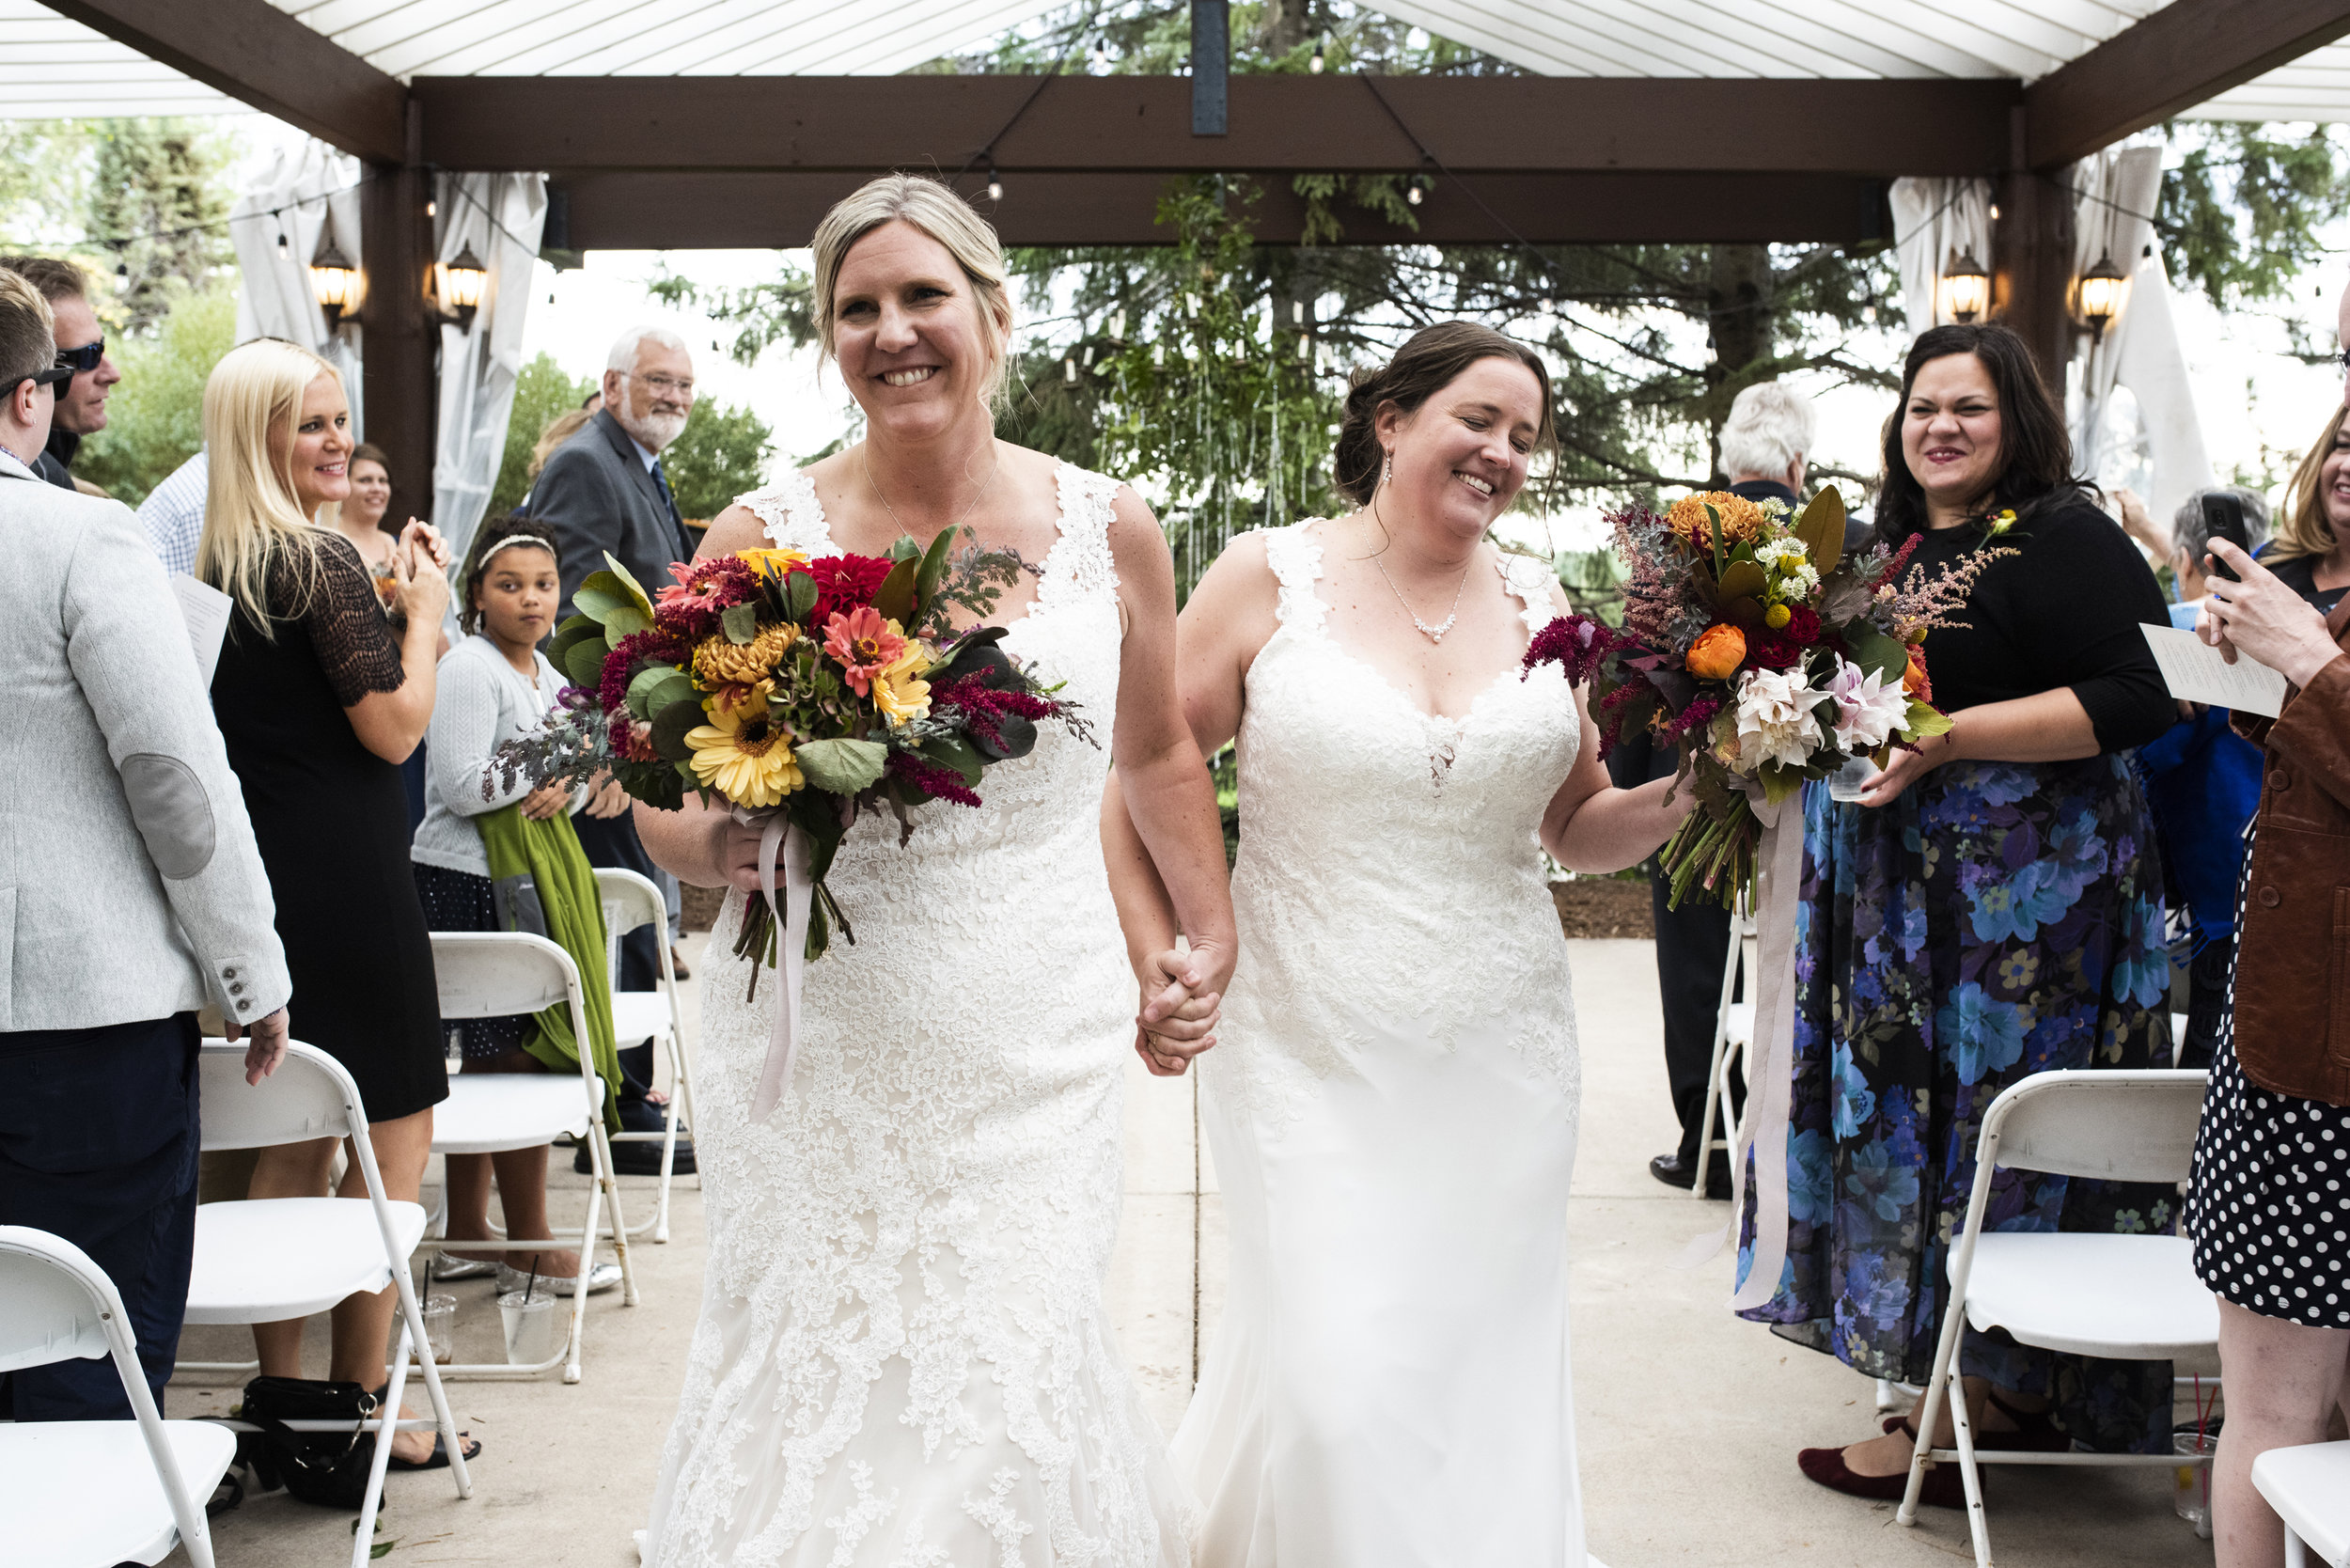 Amy and Sam in a blissful moment as they walk down the aisle as newlyweds at  Breezy Point Resort .  Wedding by:  Melissa Hesse